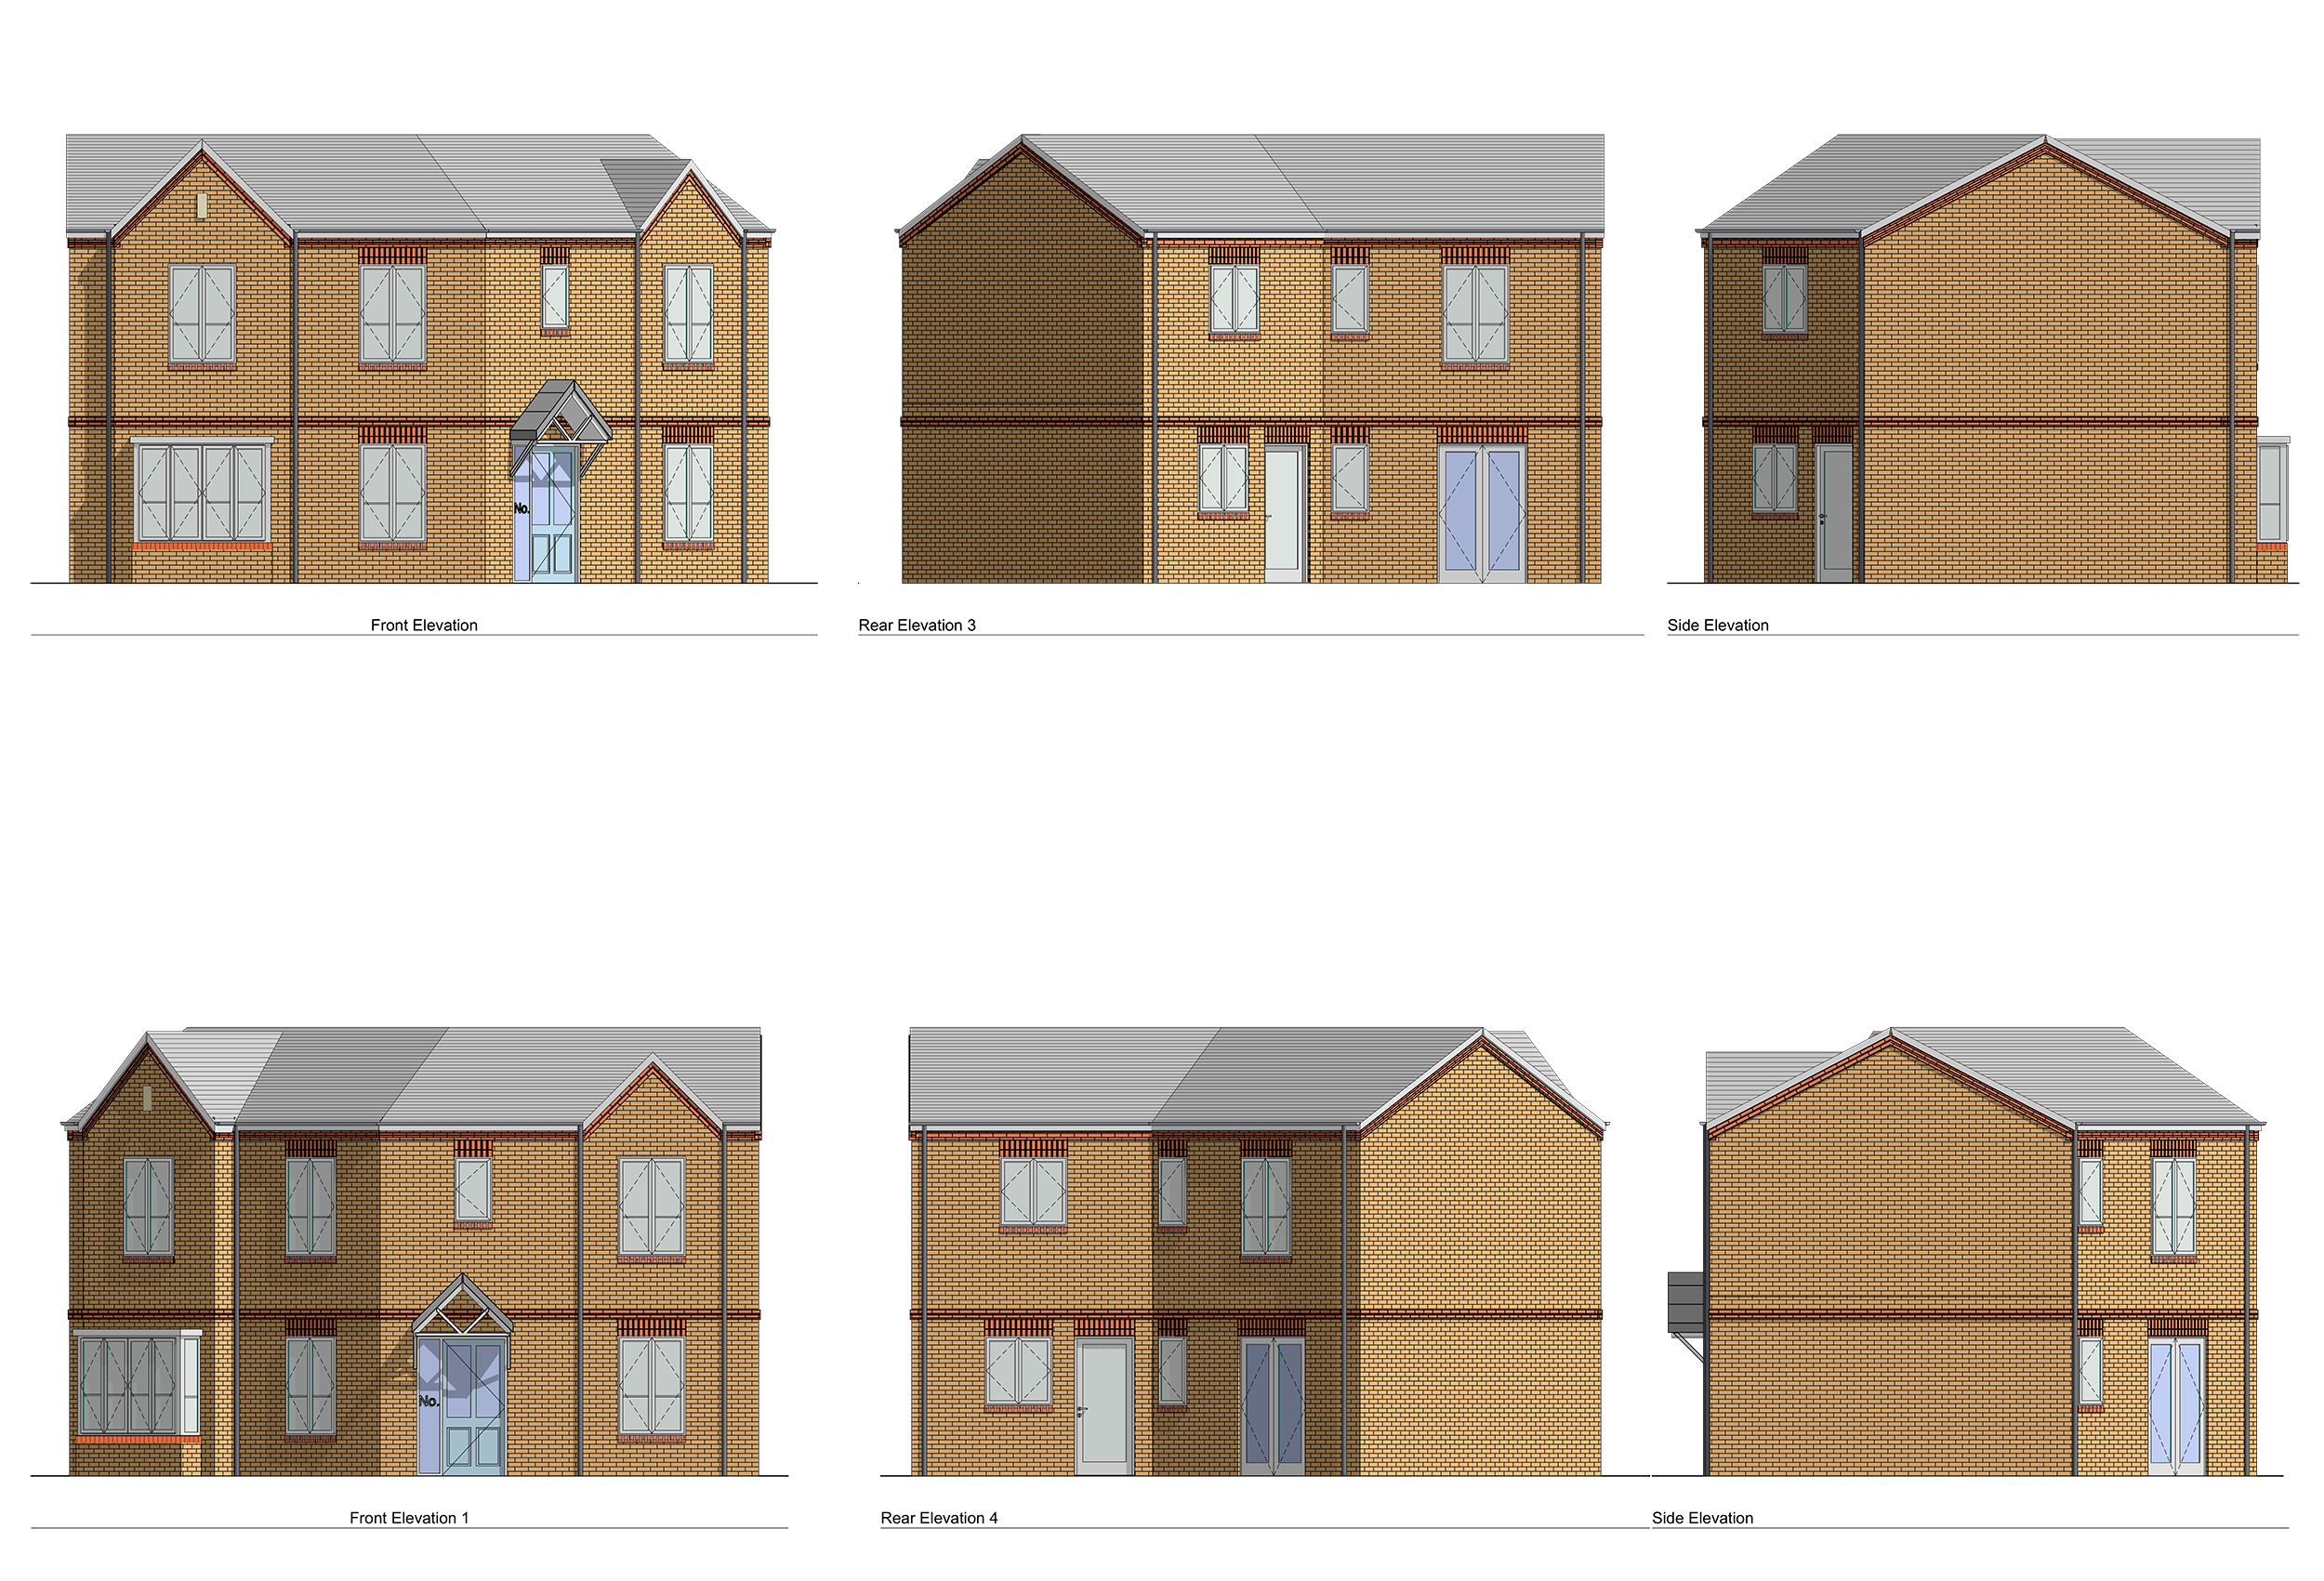 1601-P-12 3B5P Splayed House_ Elevations.jpg